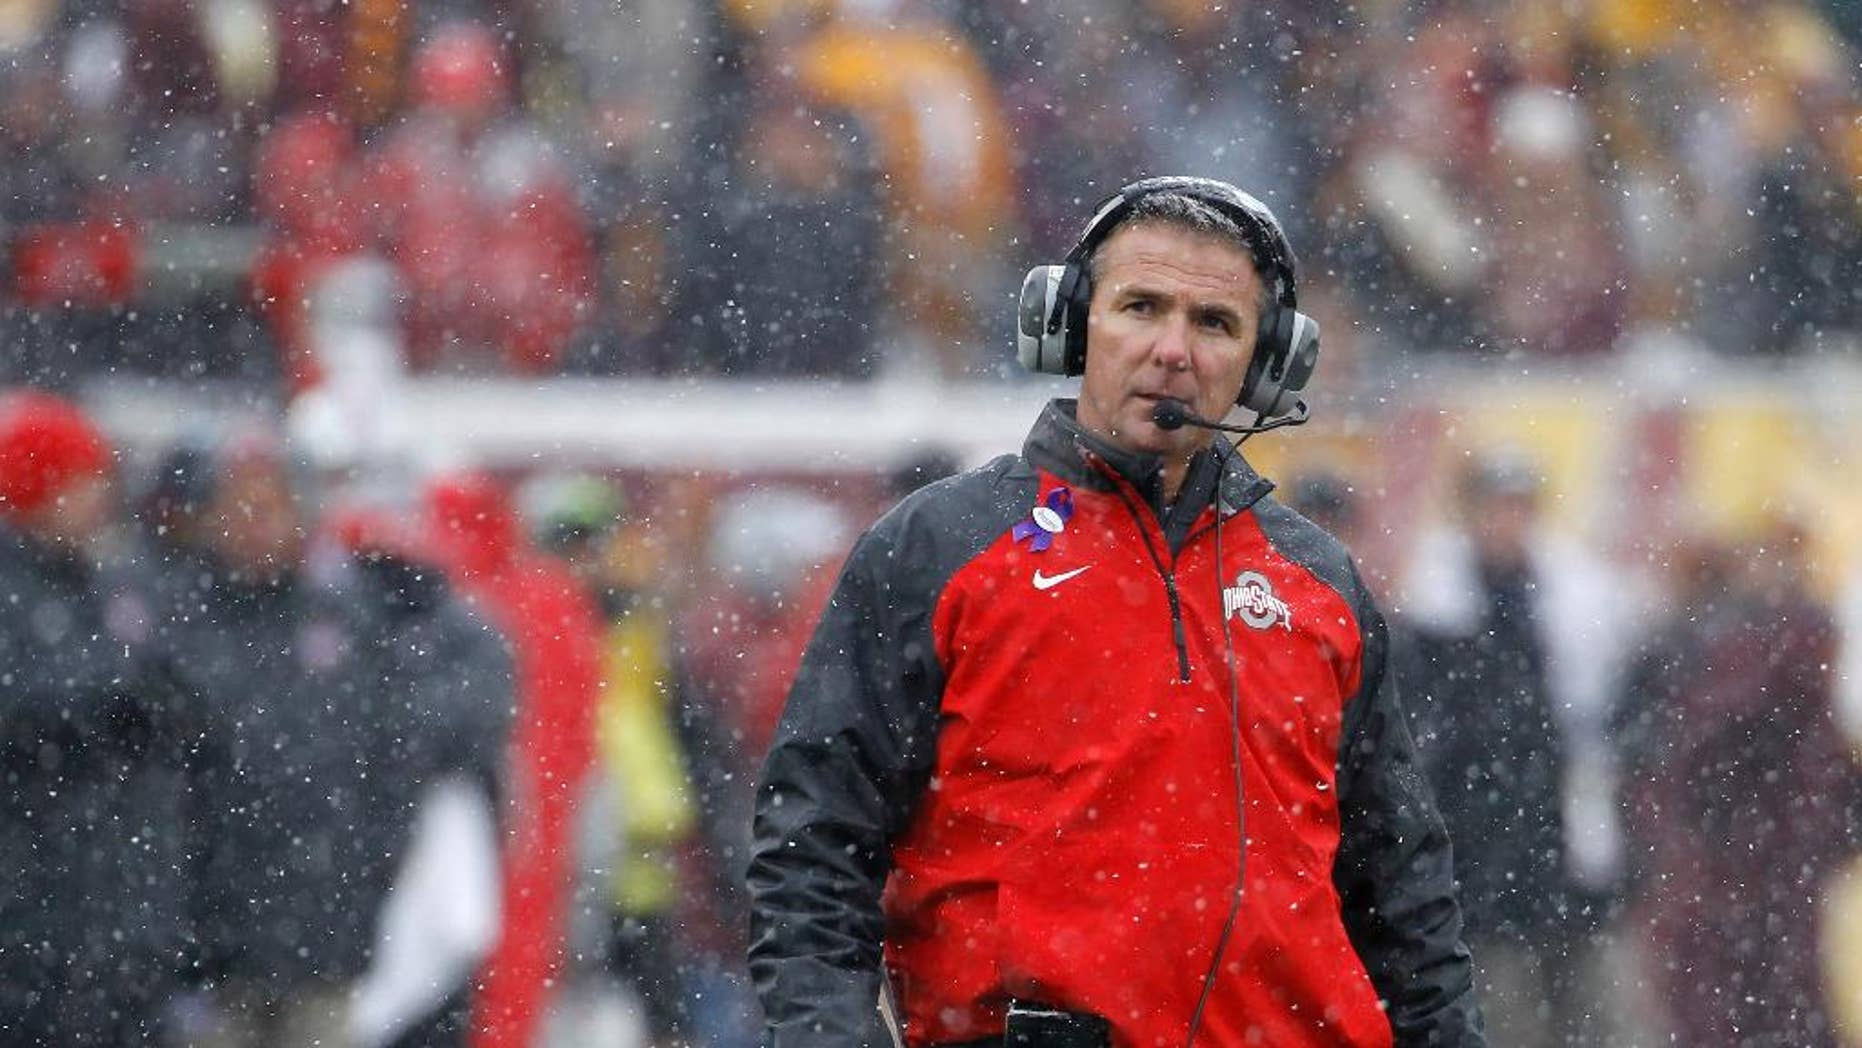 Ohio State head coach Urban Meyer walks out to his players in a timeout as snow falls during the fourth quarter of an NCAA college football game against Minnesota in Minneapolis Saturday, Nov. 15, 2014. Ohio State won 31-24. (AP Photo/Ann Heisenfelt)